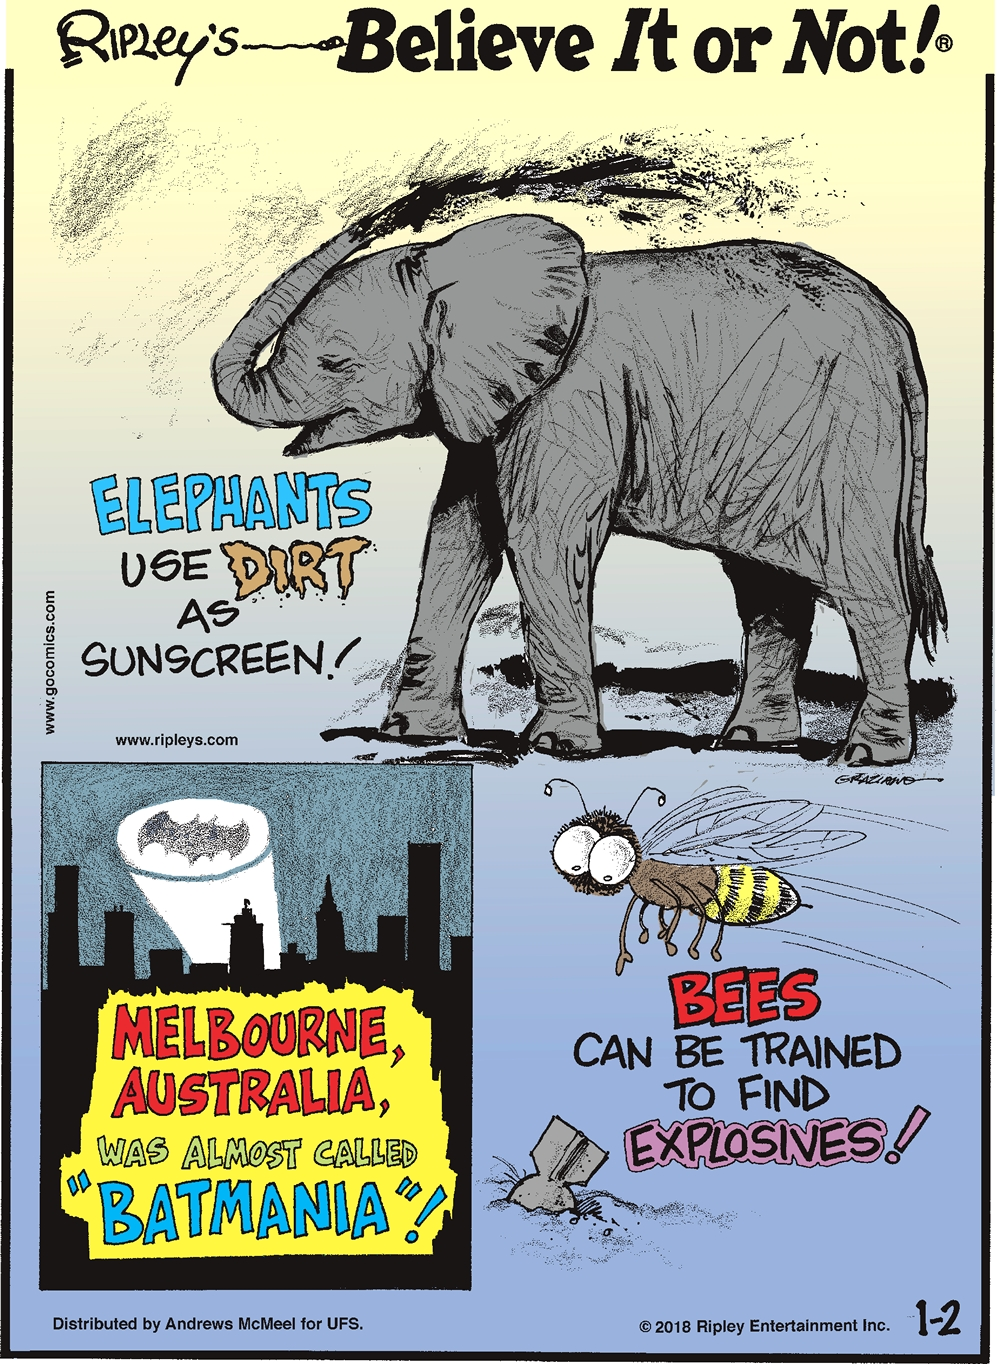 "Elephants use dirt as sunscreen!-------------------- Melbourne, Australia, was almost called ""Batmania""!-------------------- Bees can be trained to find explosives!"